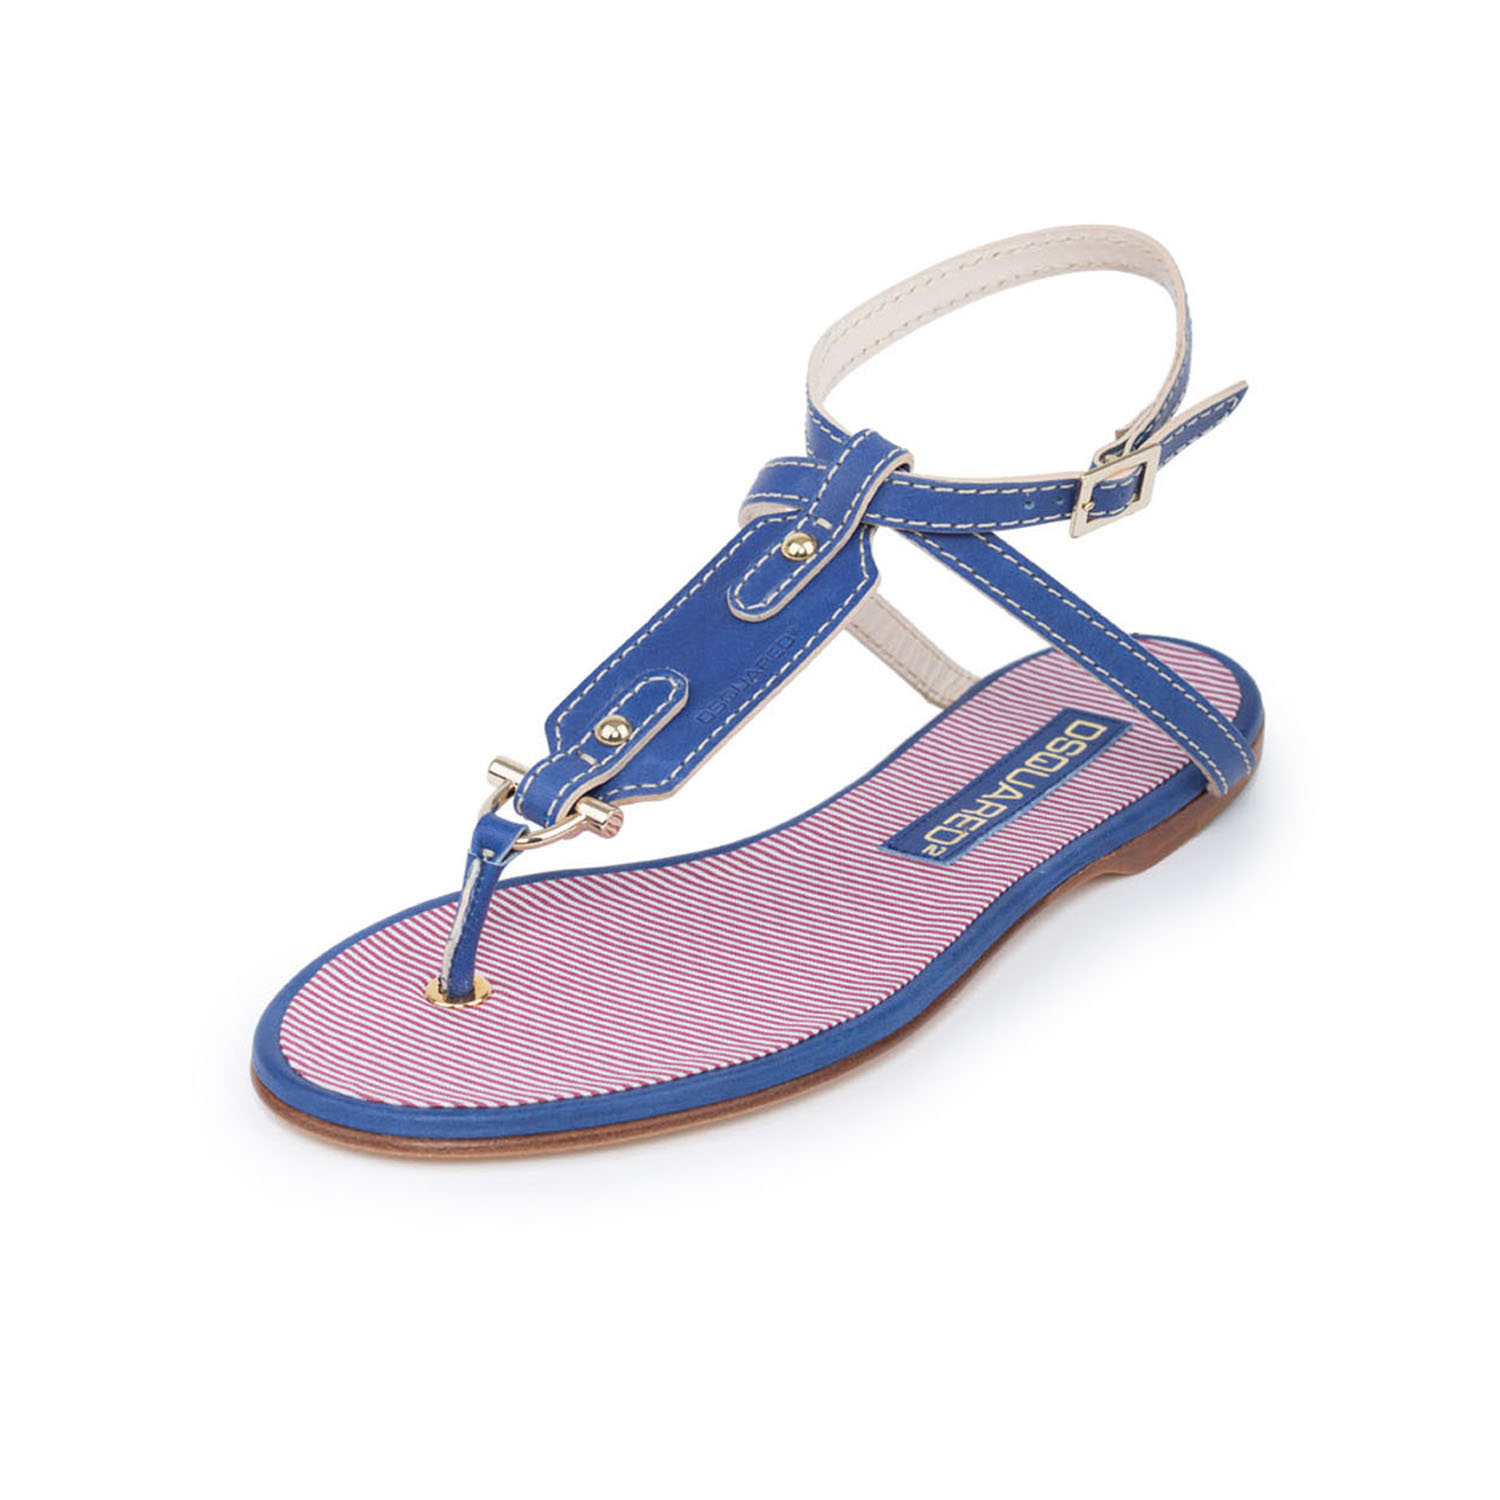 Women Blue Leather & Textile T-Strap Flat Sandals Ankle Wrap Shoes